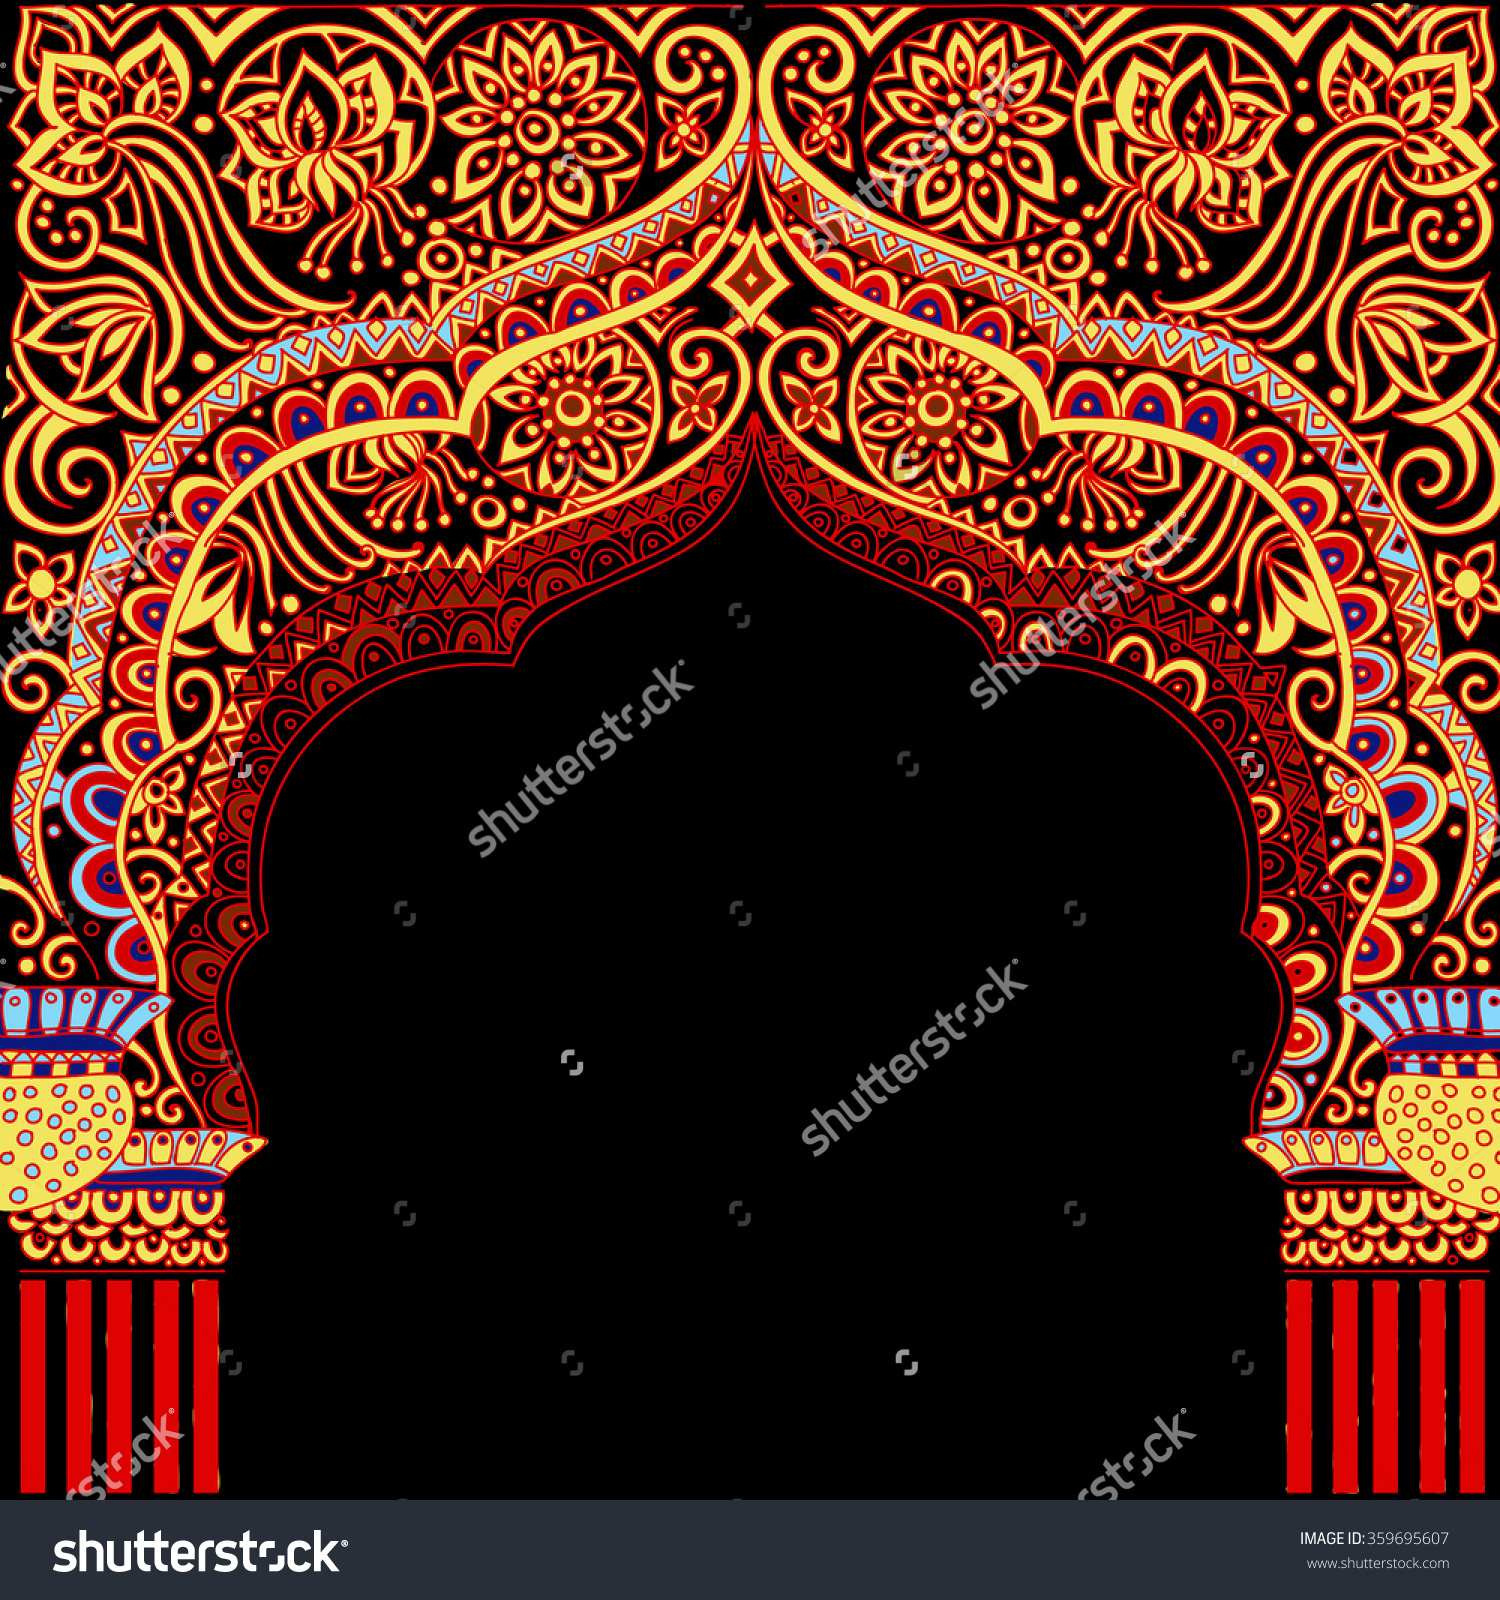 Arabic temple clipart clip art download Indian Architectureindian Temple Architectural Archarchitecture ... clip art download